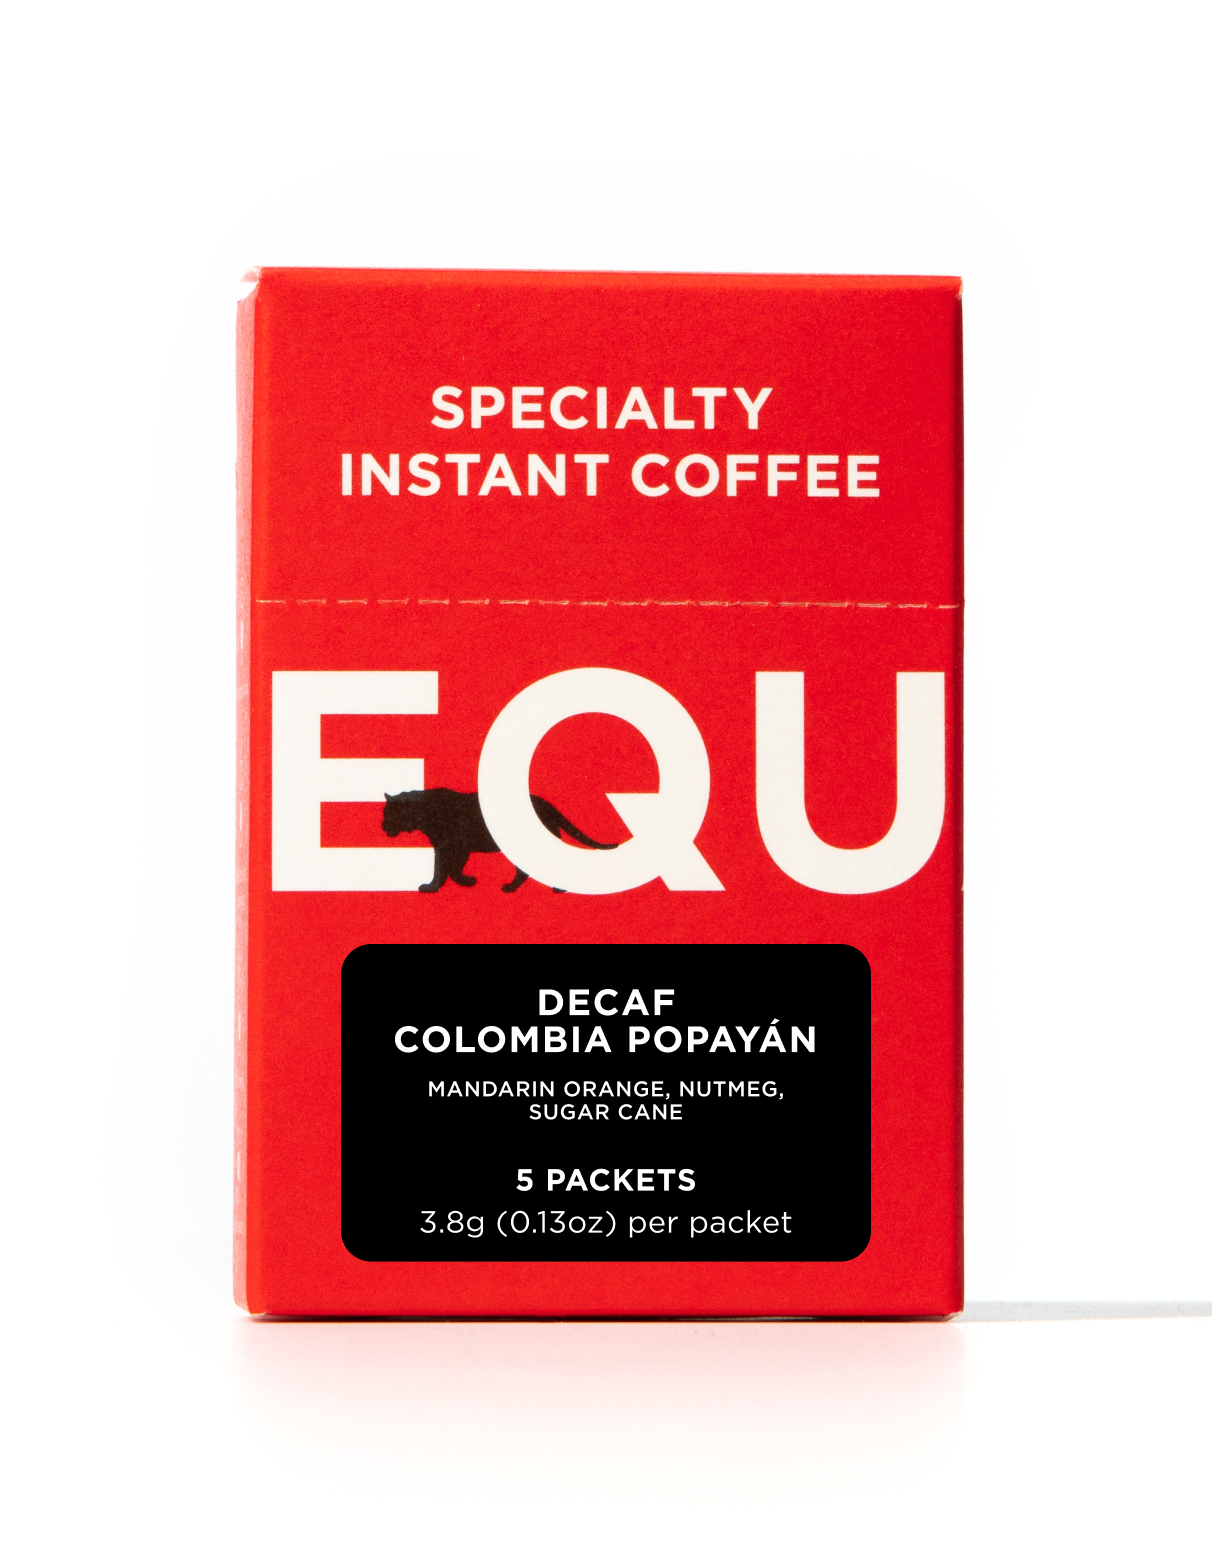 Decaf Colombia Popayan Instant Coffee, 5-Pack